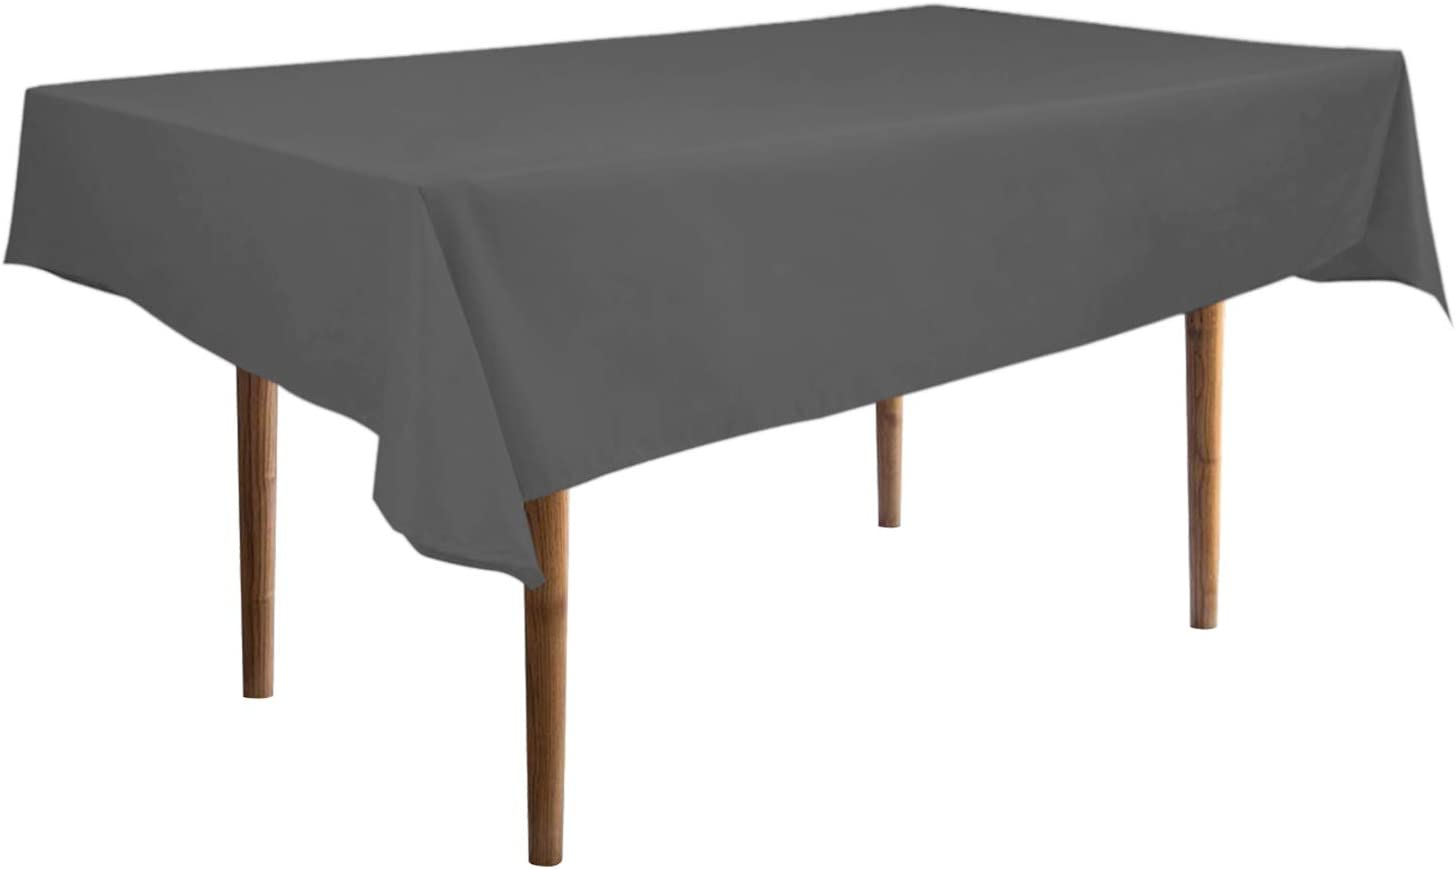 """Easy-Going Rectangle Waterproof Tablecloths 60"""" x126"""" Dark Gray Spillproof Fabric Tablecloth,Decorative Fabric Table Cover,Great for Buffet Table, Parties, Holiday Dinner, Wedding & More"""